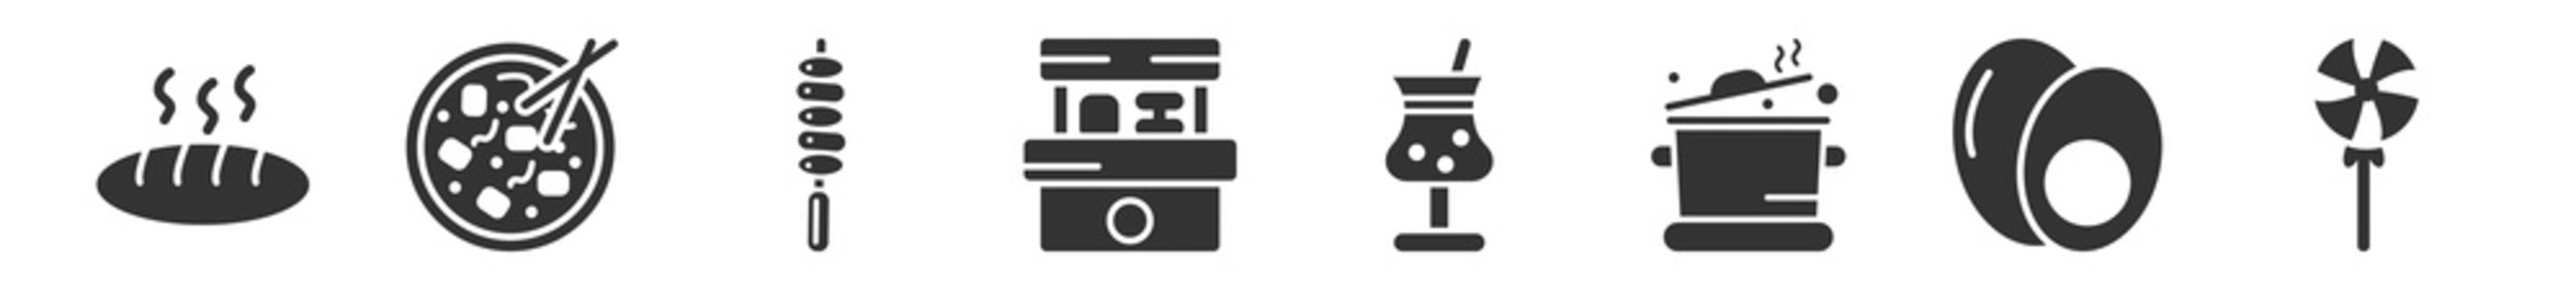 filled set of food icons. glyph vector icons such as baguette, mapo tofu, brochette, snack booth, half filled cocktail glass, lollypop. vector illustration.